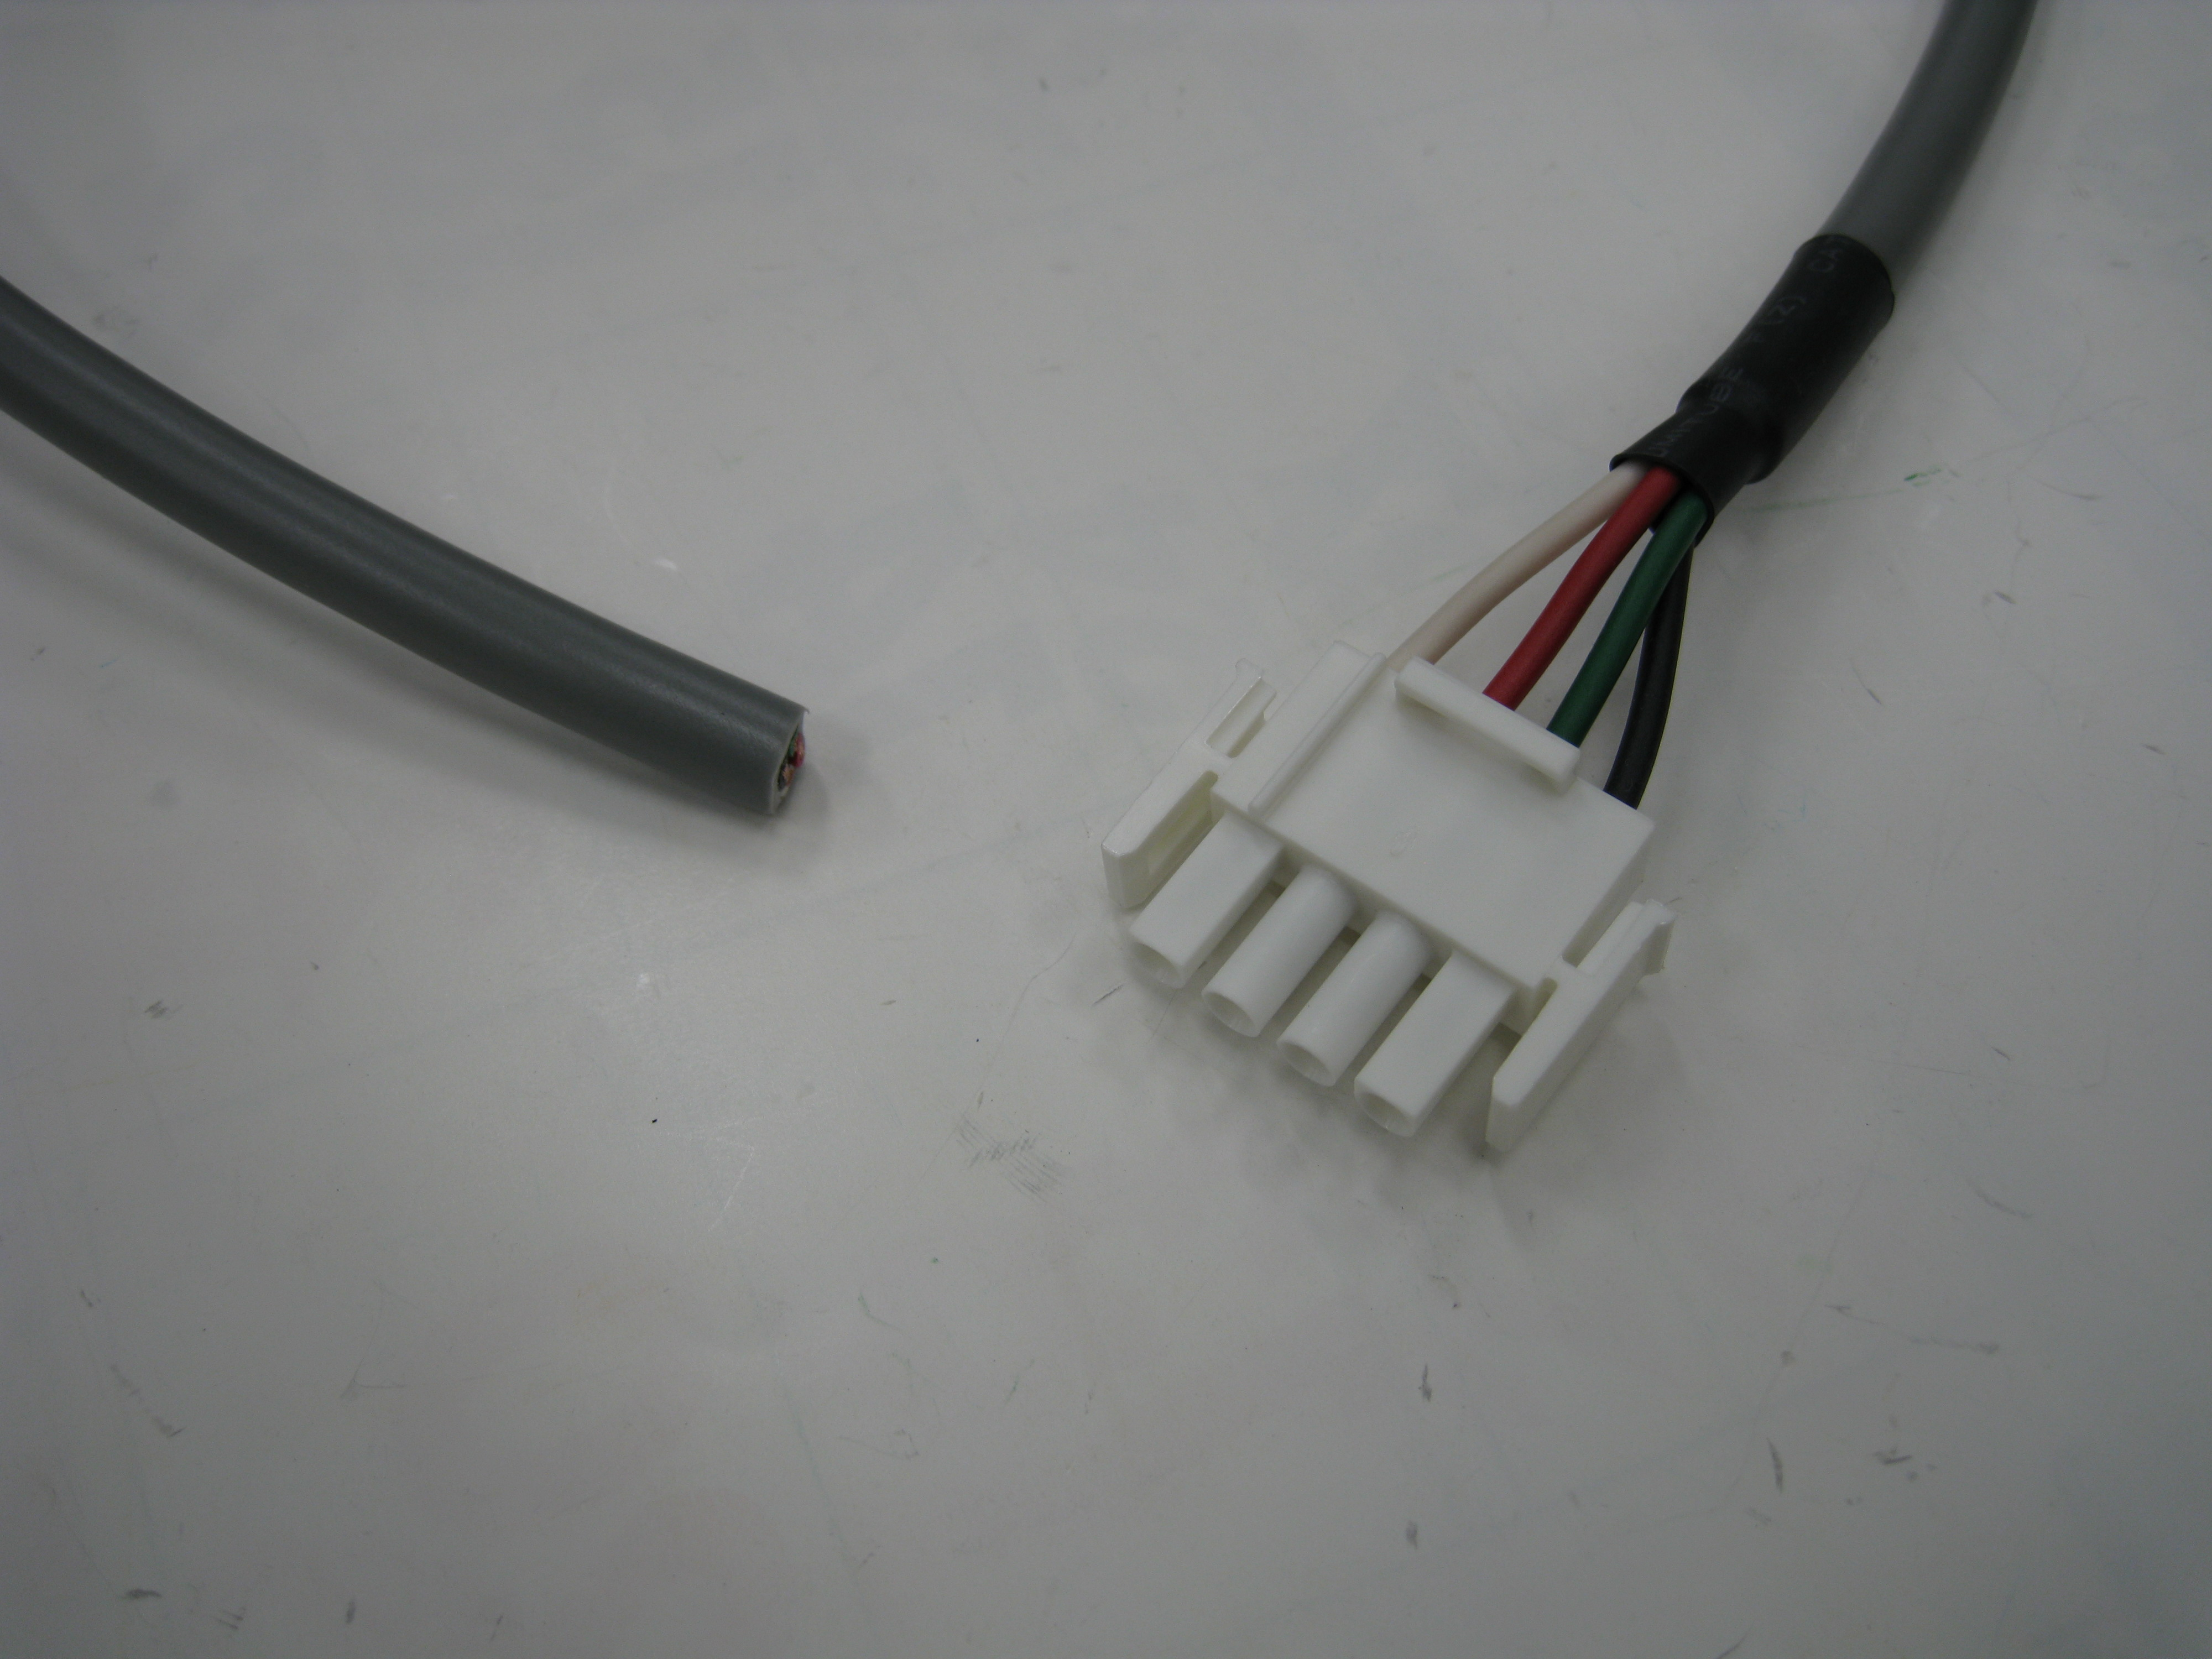 http://www.cable-harness-ex.com/case/IMG_2454.jpg